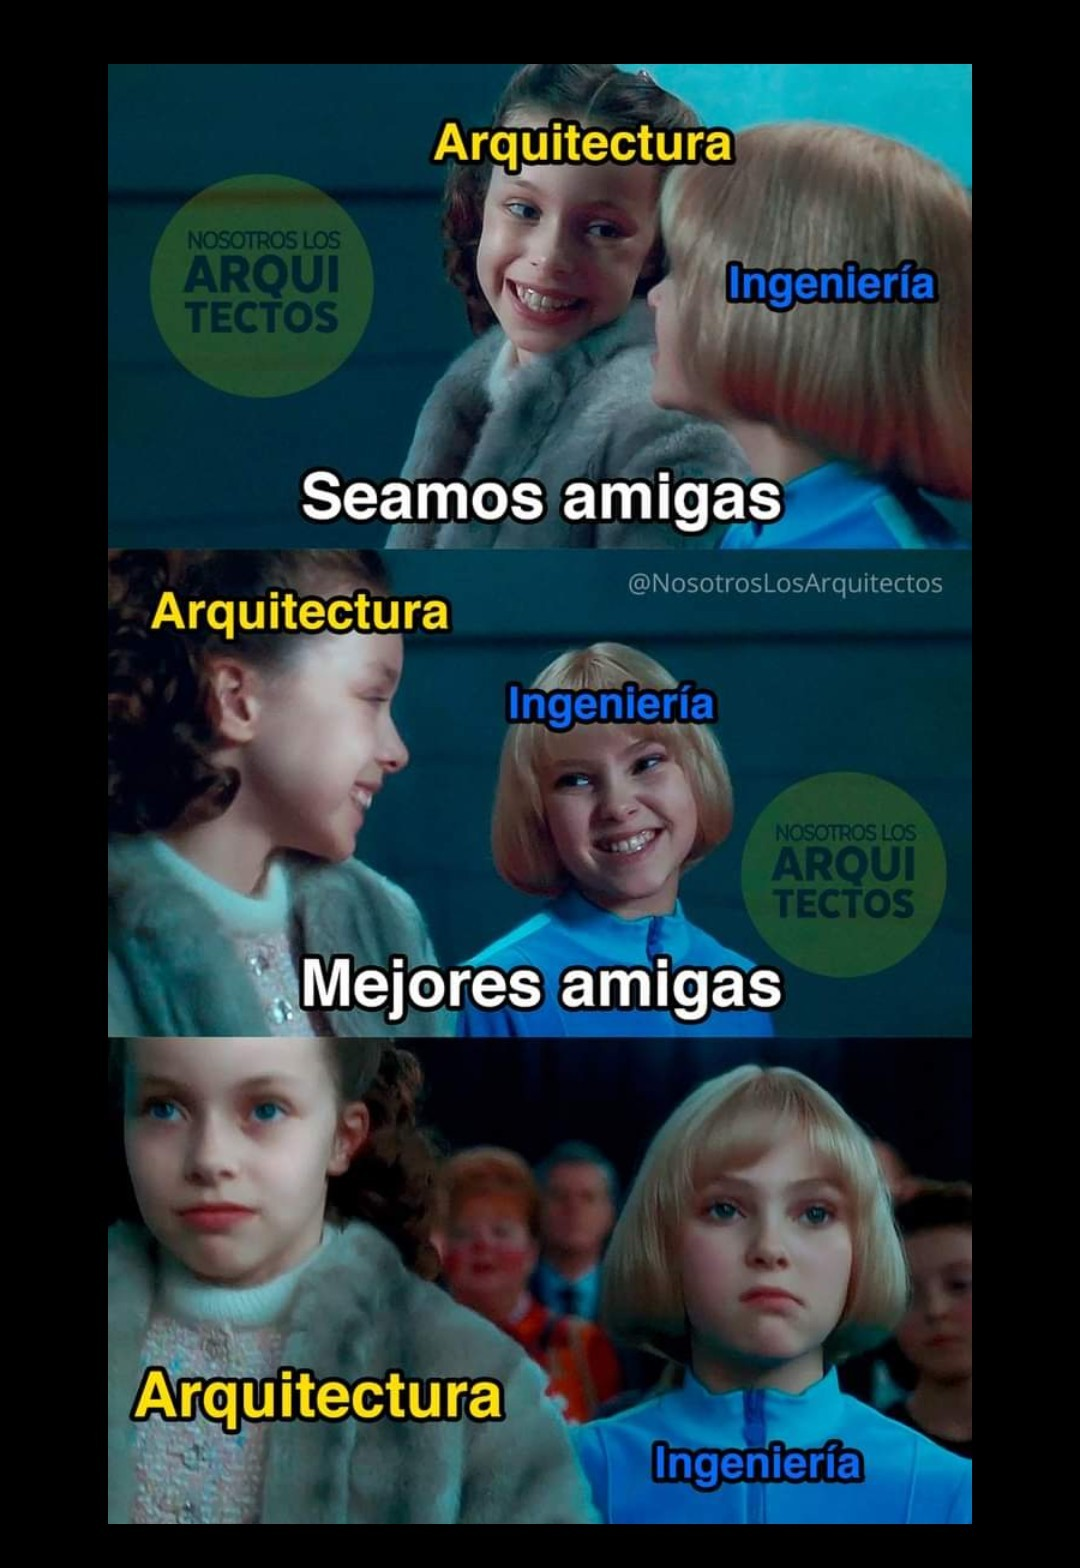 De inges no. 2 y de Arquis no. 3999 - meme